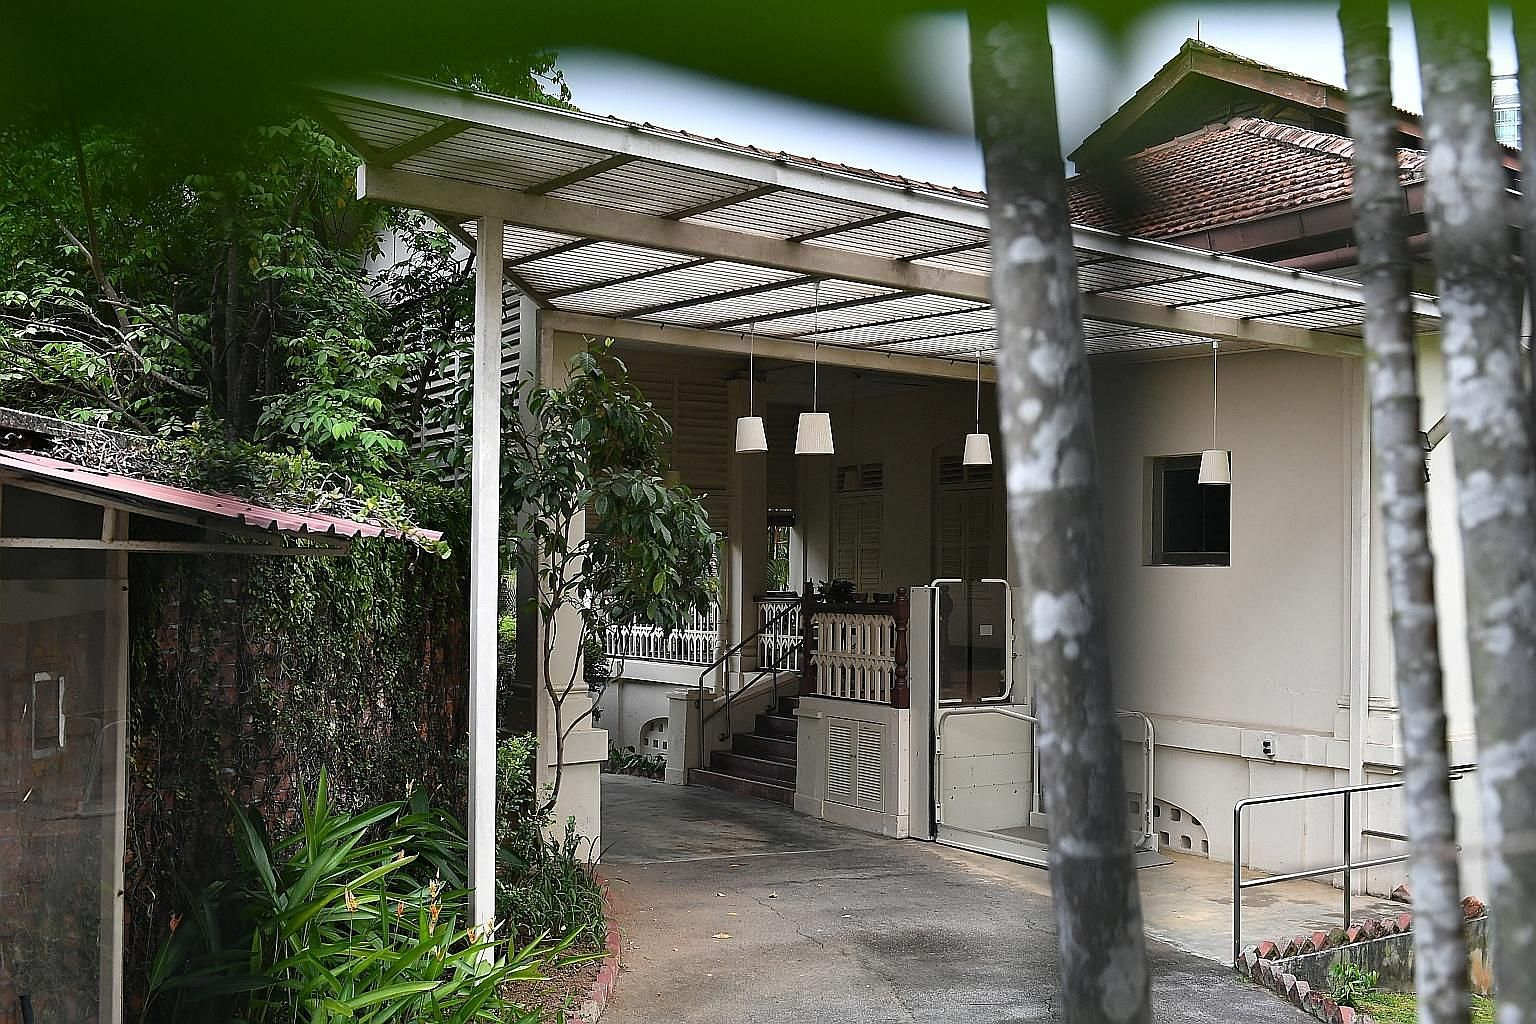 Left: 38 Oxley Road, the home of founding prime minister Lee Kuan Yew. Lawyer Lee Suet Fern (above) was found guilty by a disciplinary tribunal of grossly improper professional conduct in how she handled Mr Lee's will.